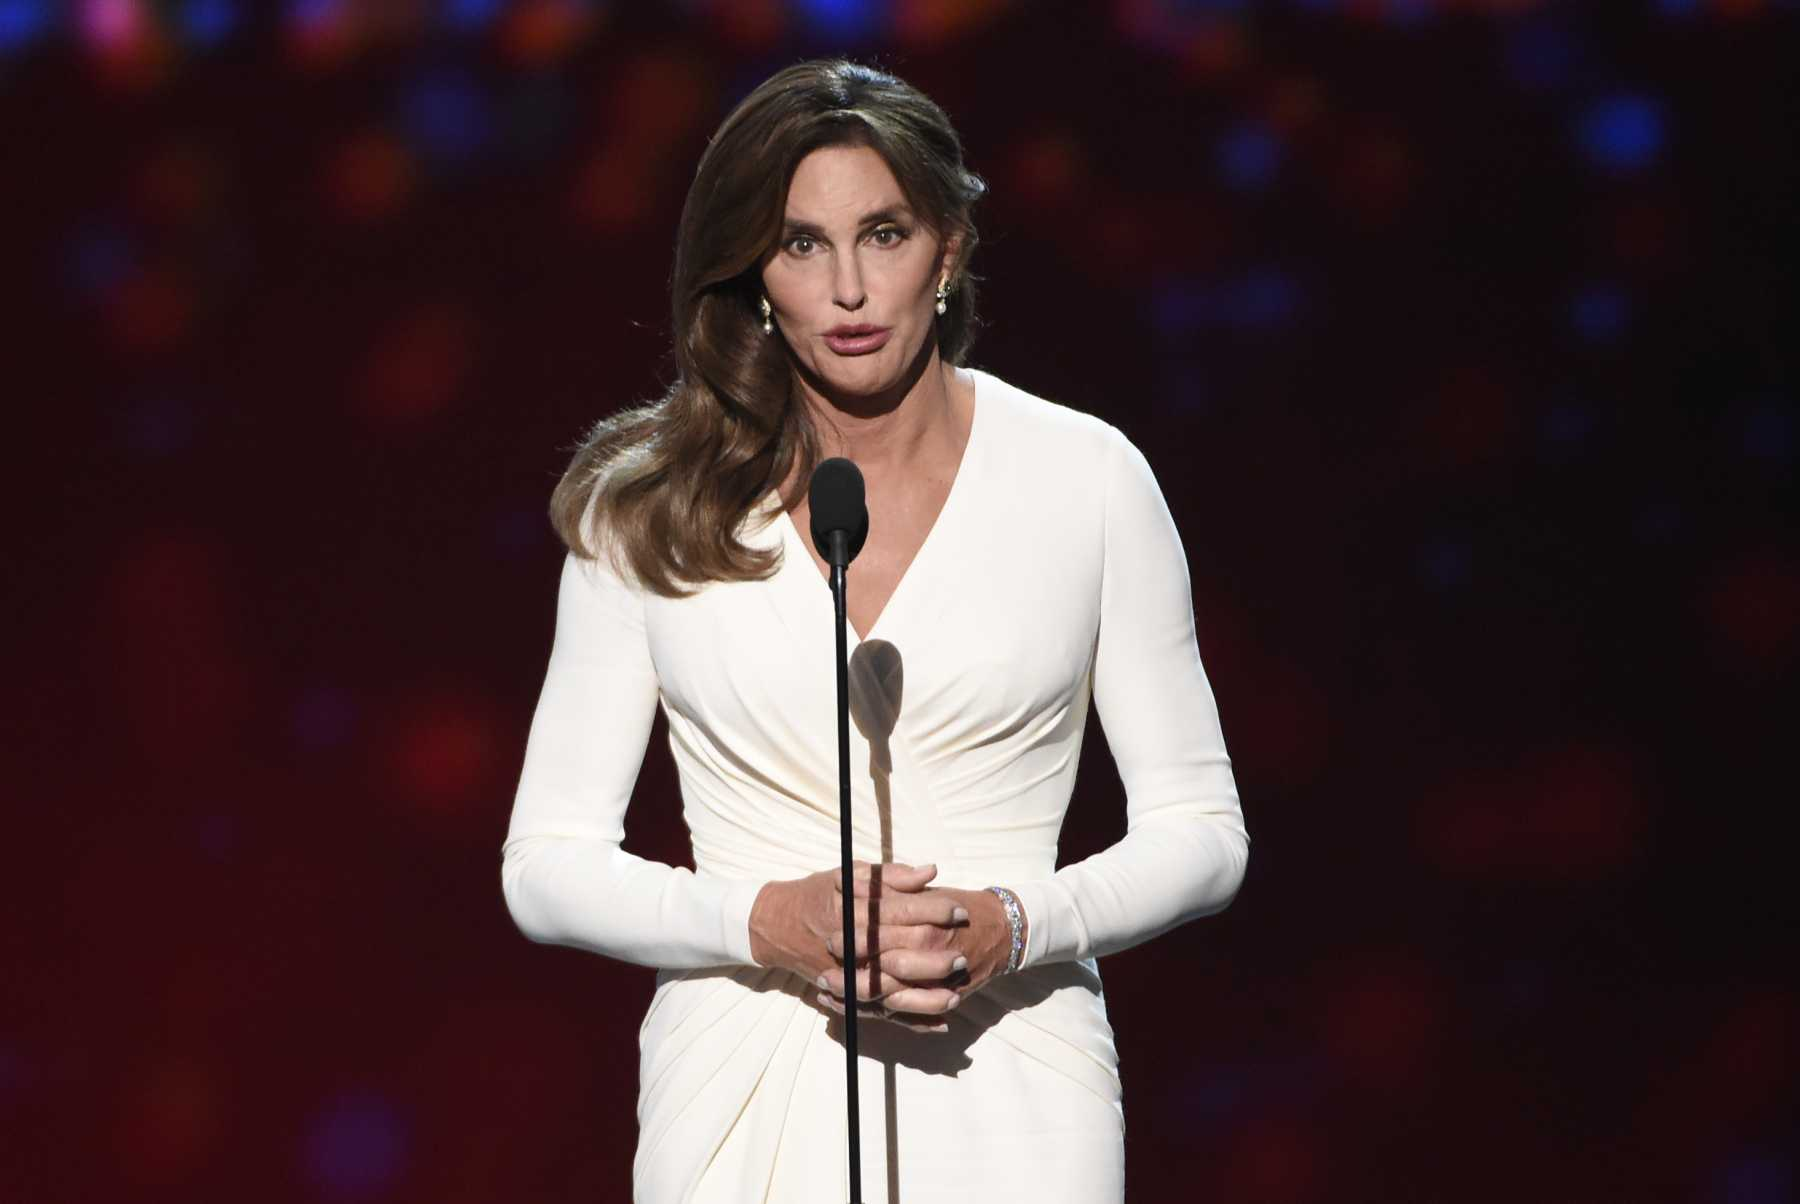 Caitlyn Jenner - Trying To Save Face?   Caitlyn Jenner